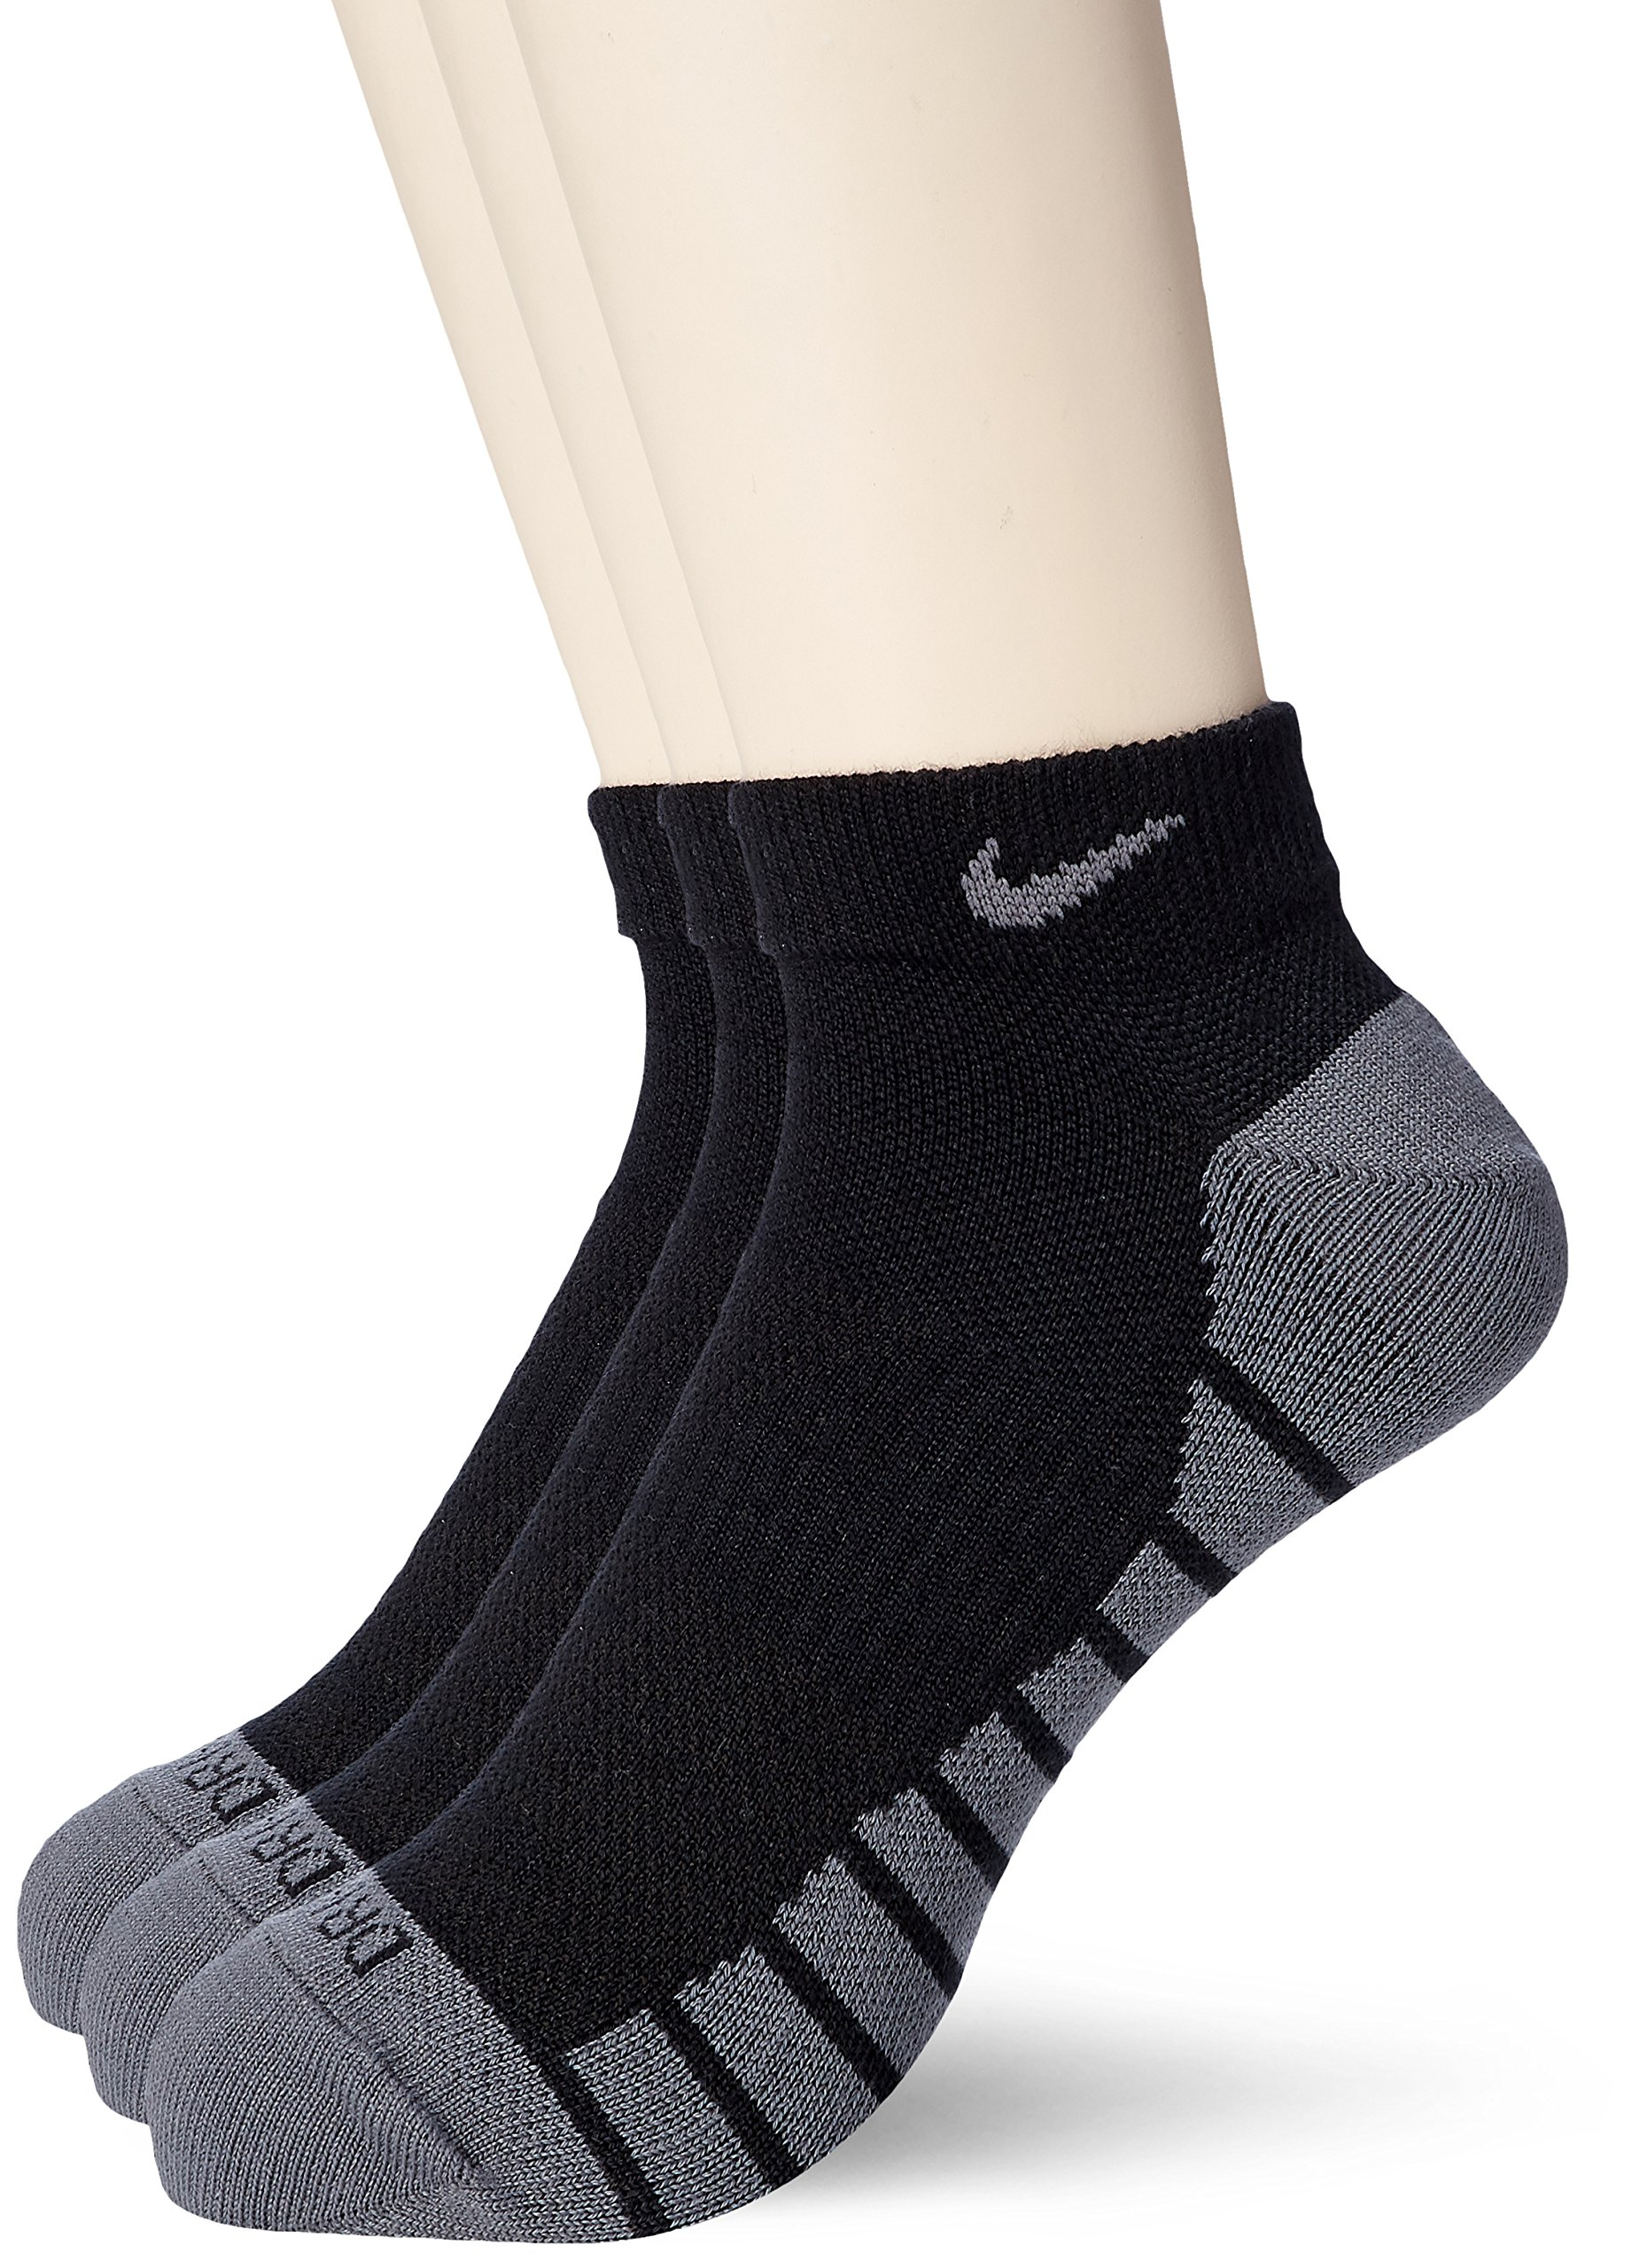 Nike Lightweight 3 Pair Golf Socks 2019 Black/Dark Gray X-Large by Nike